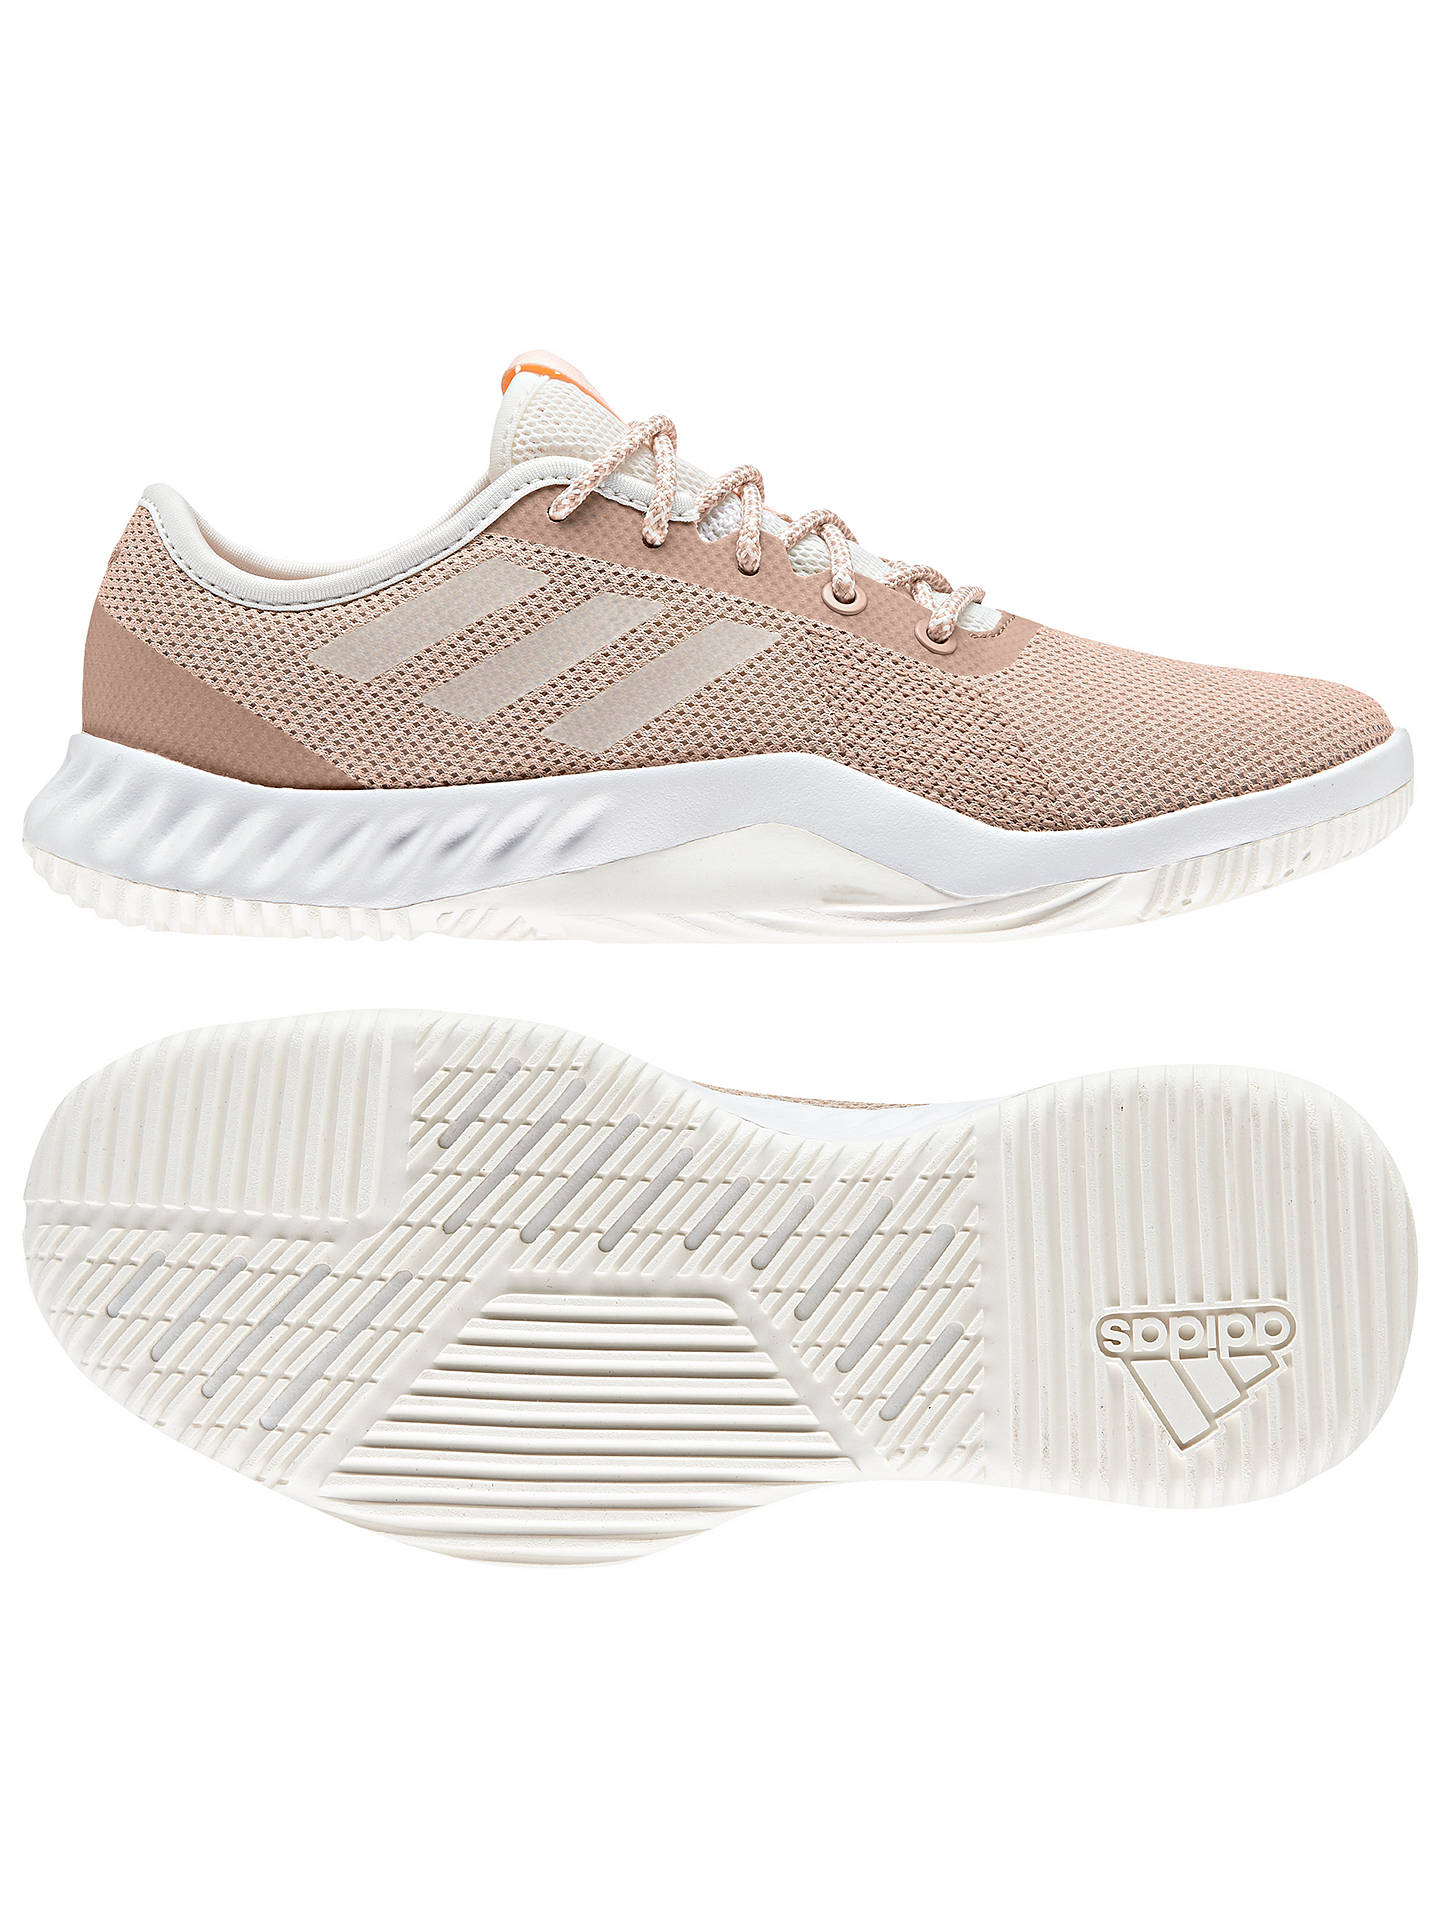 official photos 87795 cba84 ... Buyadidas CrazyTrain LT Womens Training Shoes, Cloud White, 4 Online  at johnlewis. ...